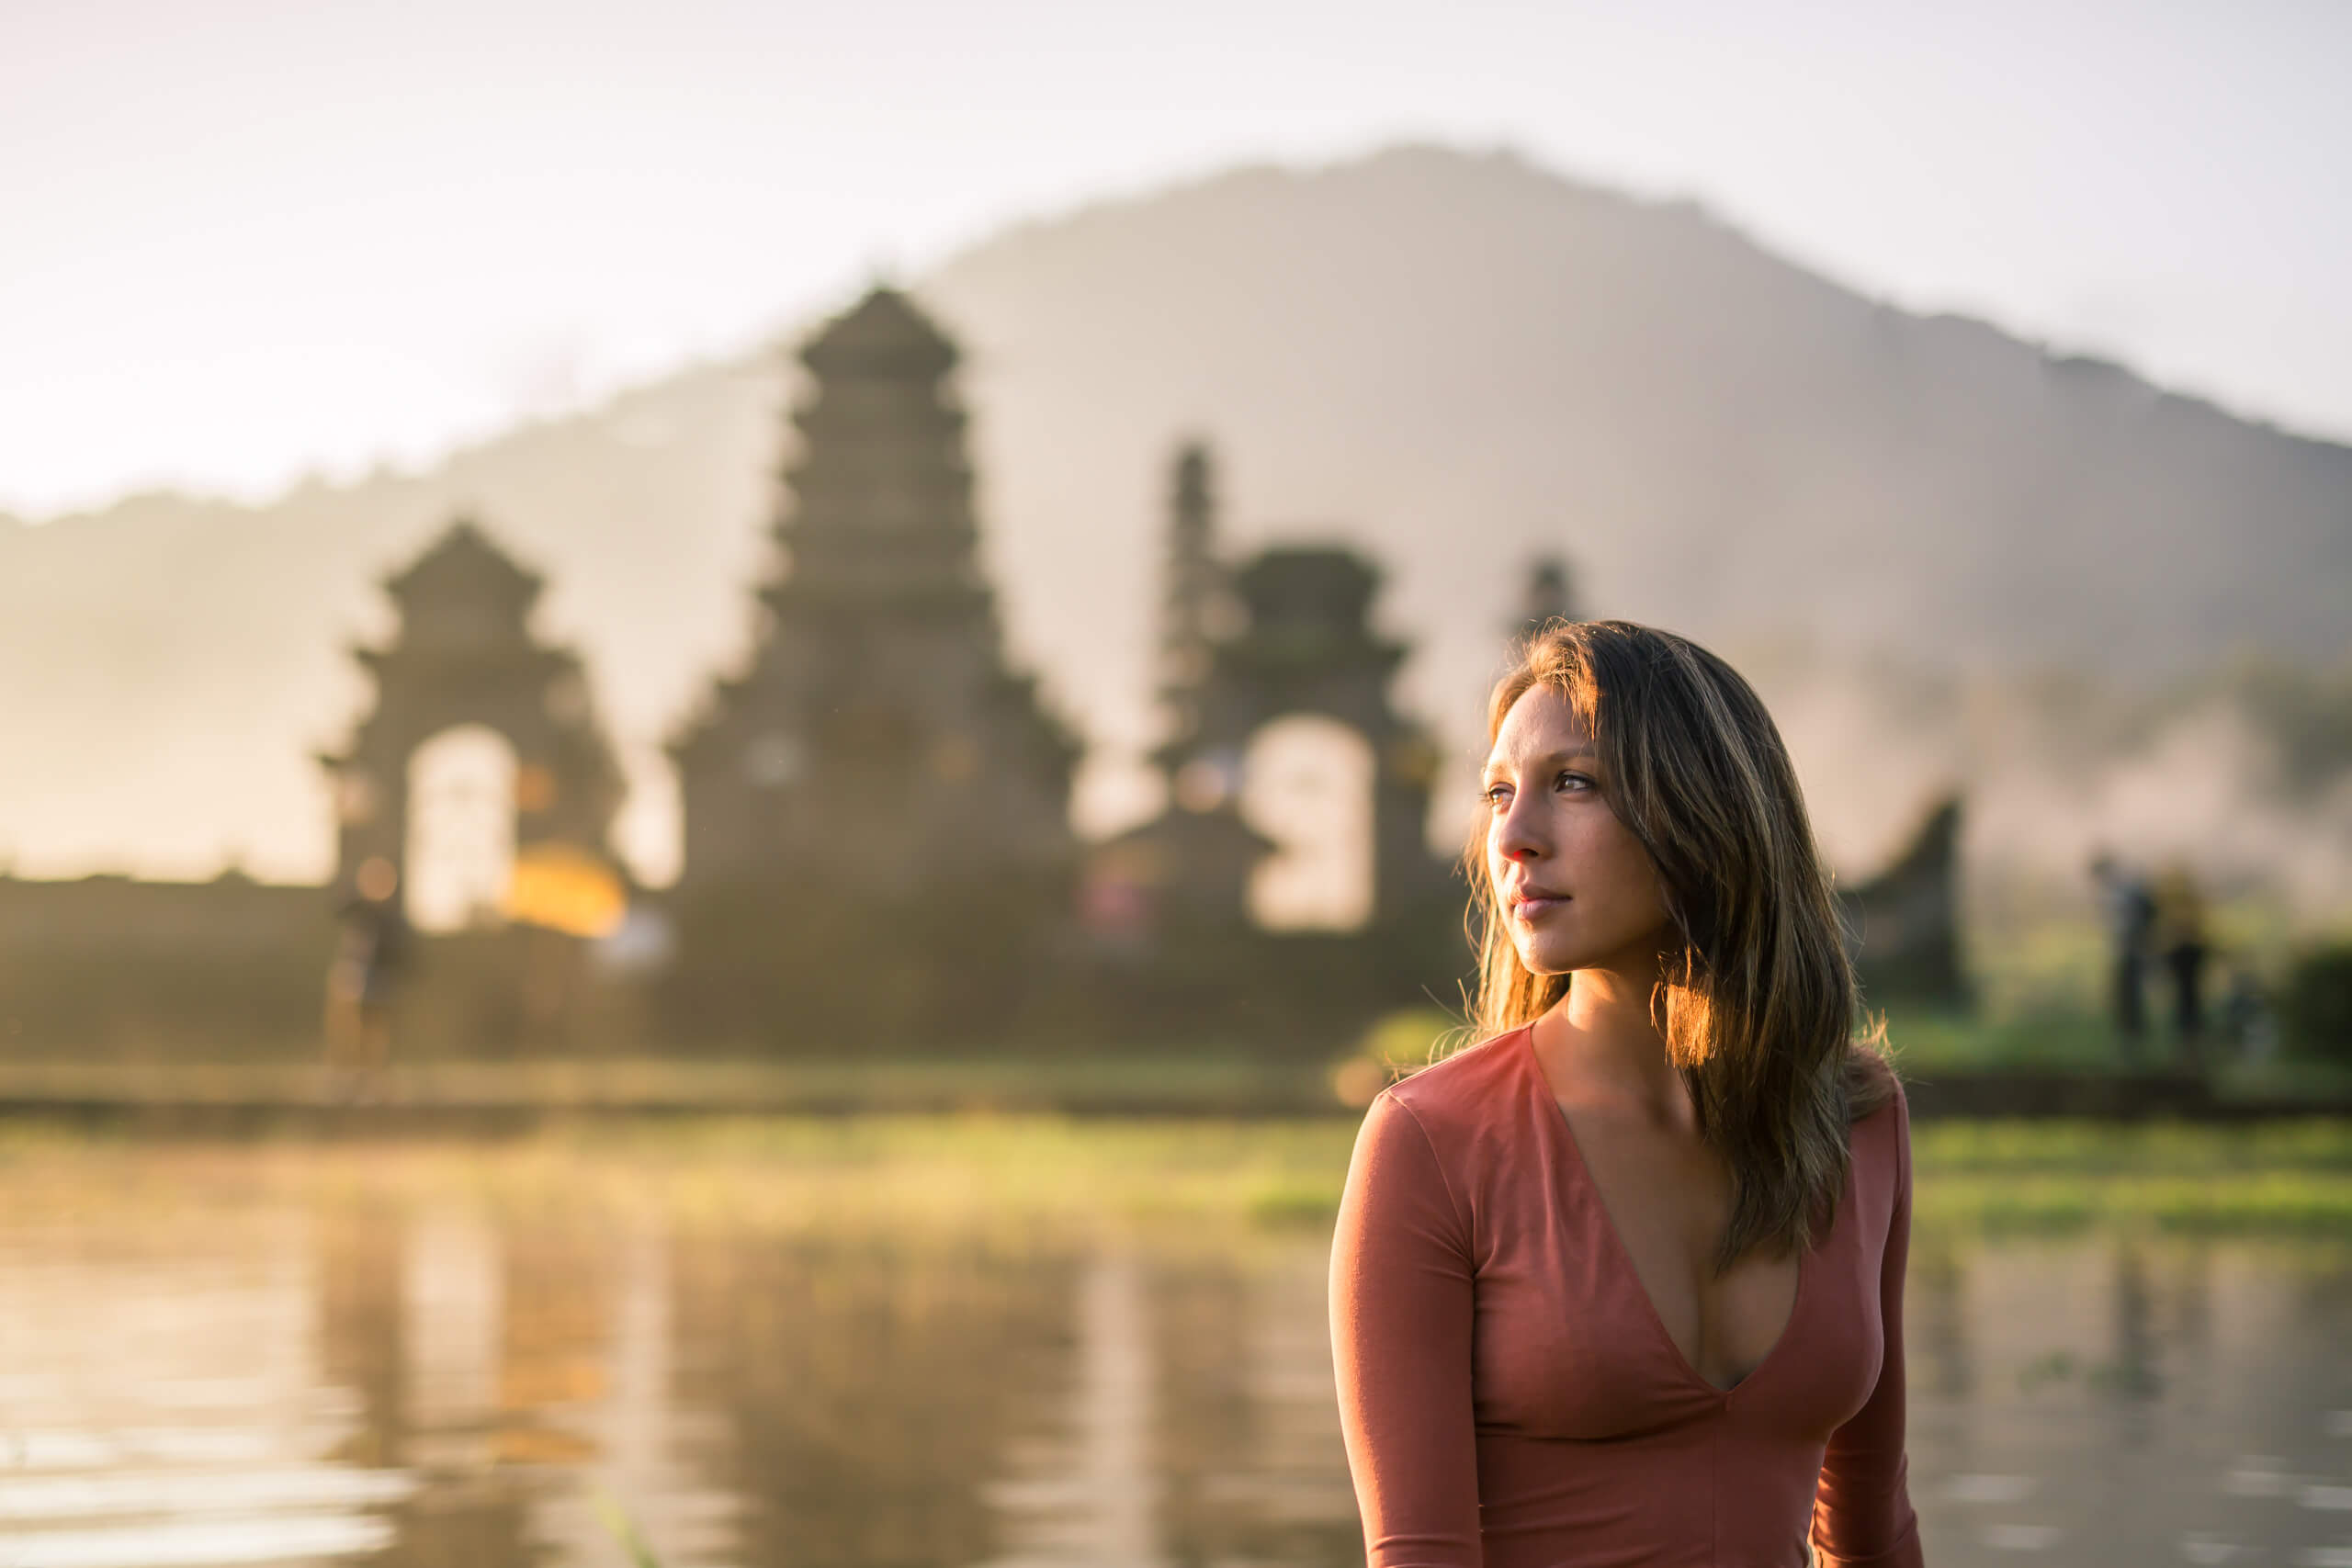 TAMBLINGAN LAKE TEMPLE | With the temple and towering mountain as a backdrop, the sunrise was stunning over the lake.